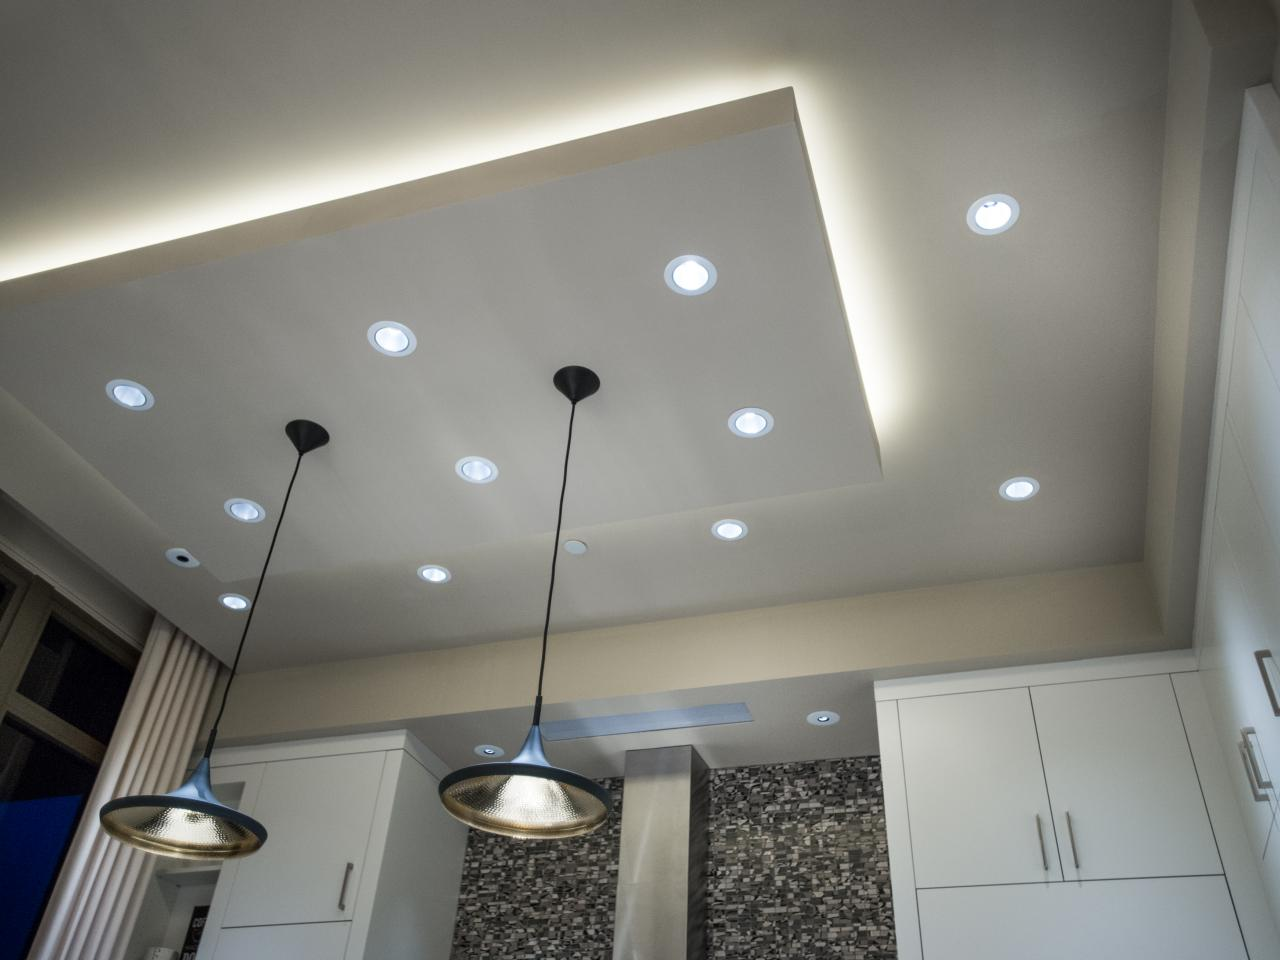 Ceiling Lighting Use Of Led Drop Ceiling Lights For Quality Lighting